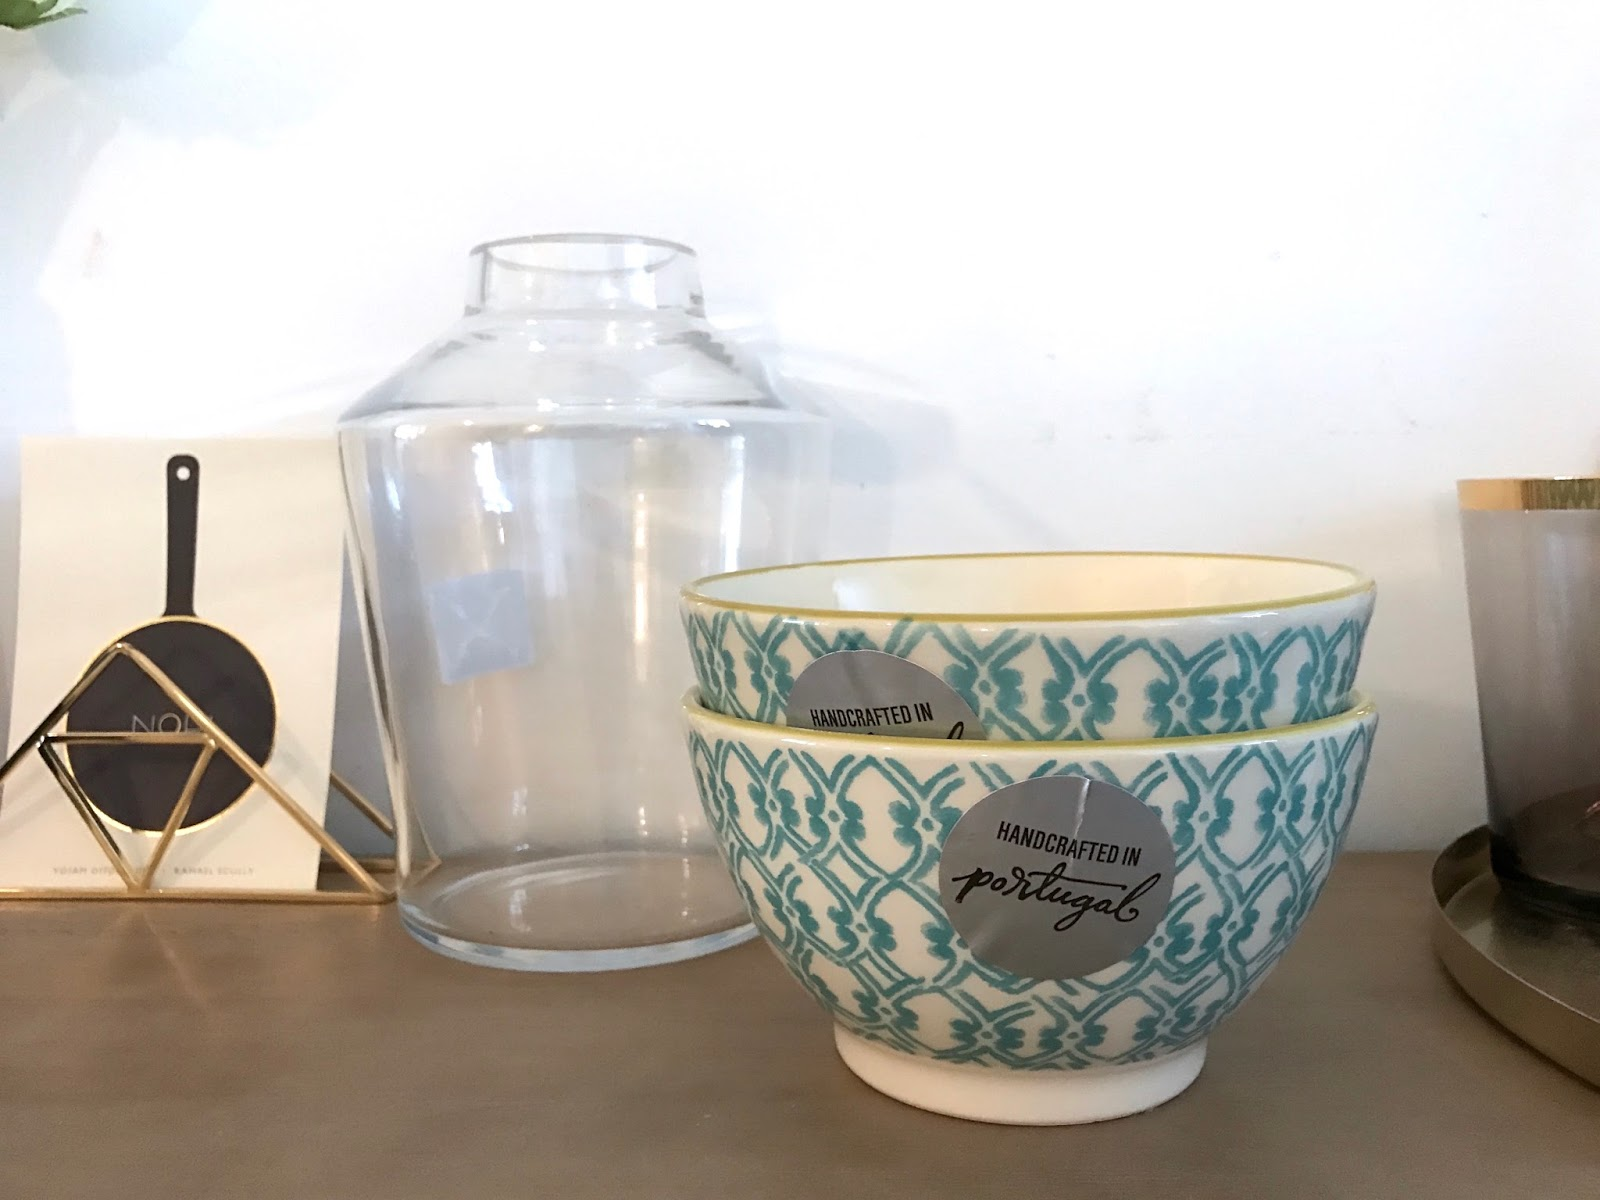 Homeware haul update from tk maxxhomesense lucy loves to eat the glass vase was just 299 and will help me transform that scandi greenery with glass vibe in our living room the bowls are still too new and precious reviewsmspy